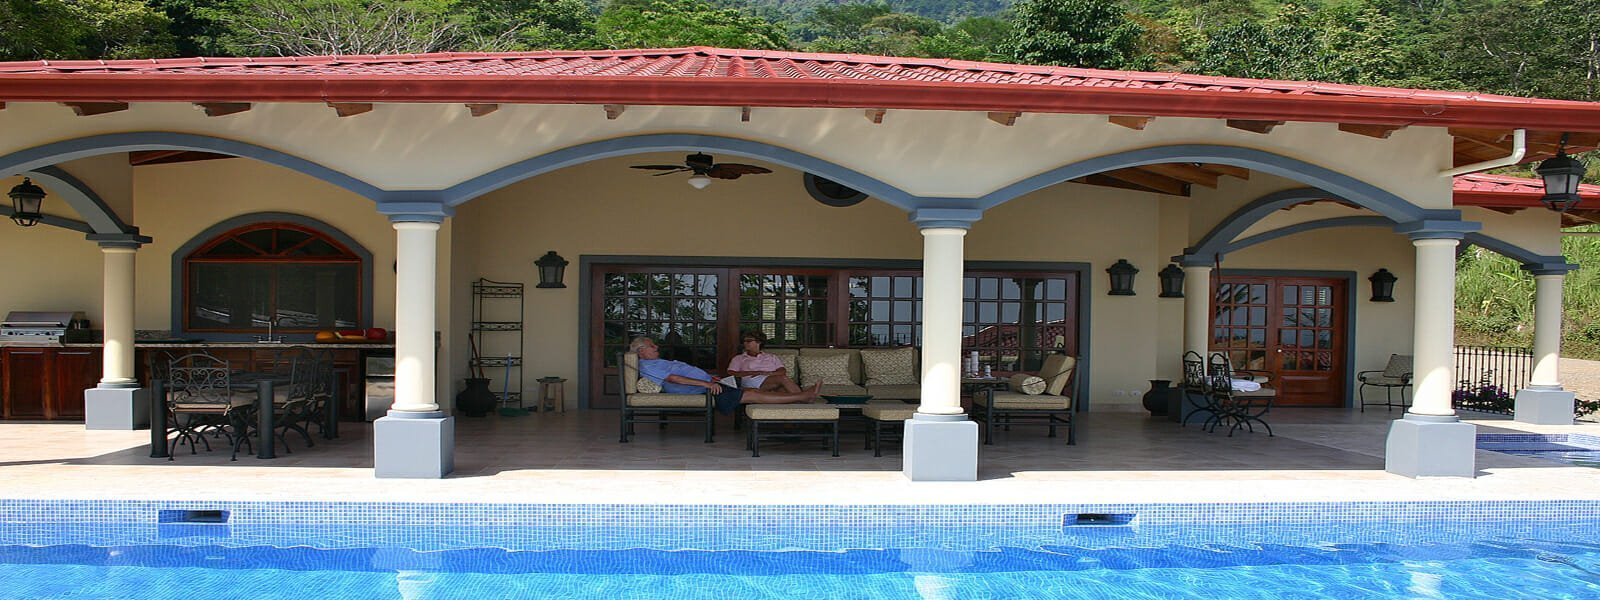 Pacific Lots and Homes | Costa Rica Real Estate | Costa Rica Living